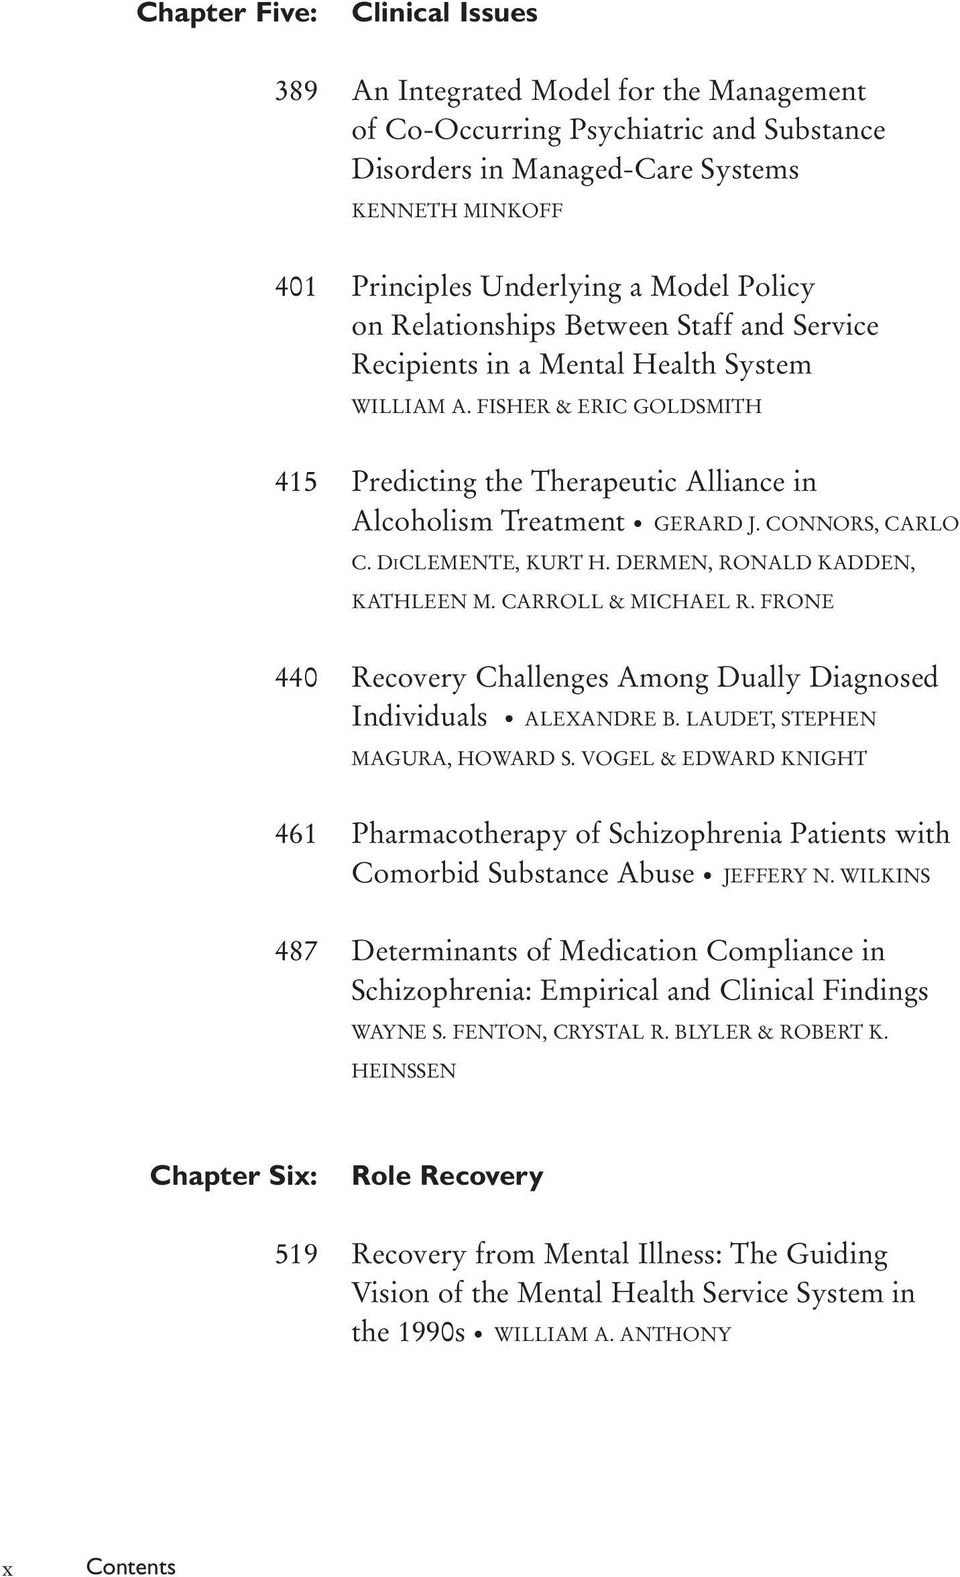 CONNORS, CARLO C. DICLEMENTE, KURT H. DERMEN, RONALD KADDEN, KATHLEEN M. CARROLL & MICHAEL R. FRONE 440 Recovery Challenges Among Dually Diagnosed Individuals ALEXANDRE B.